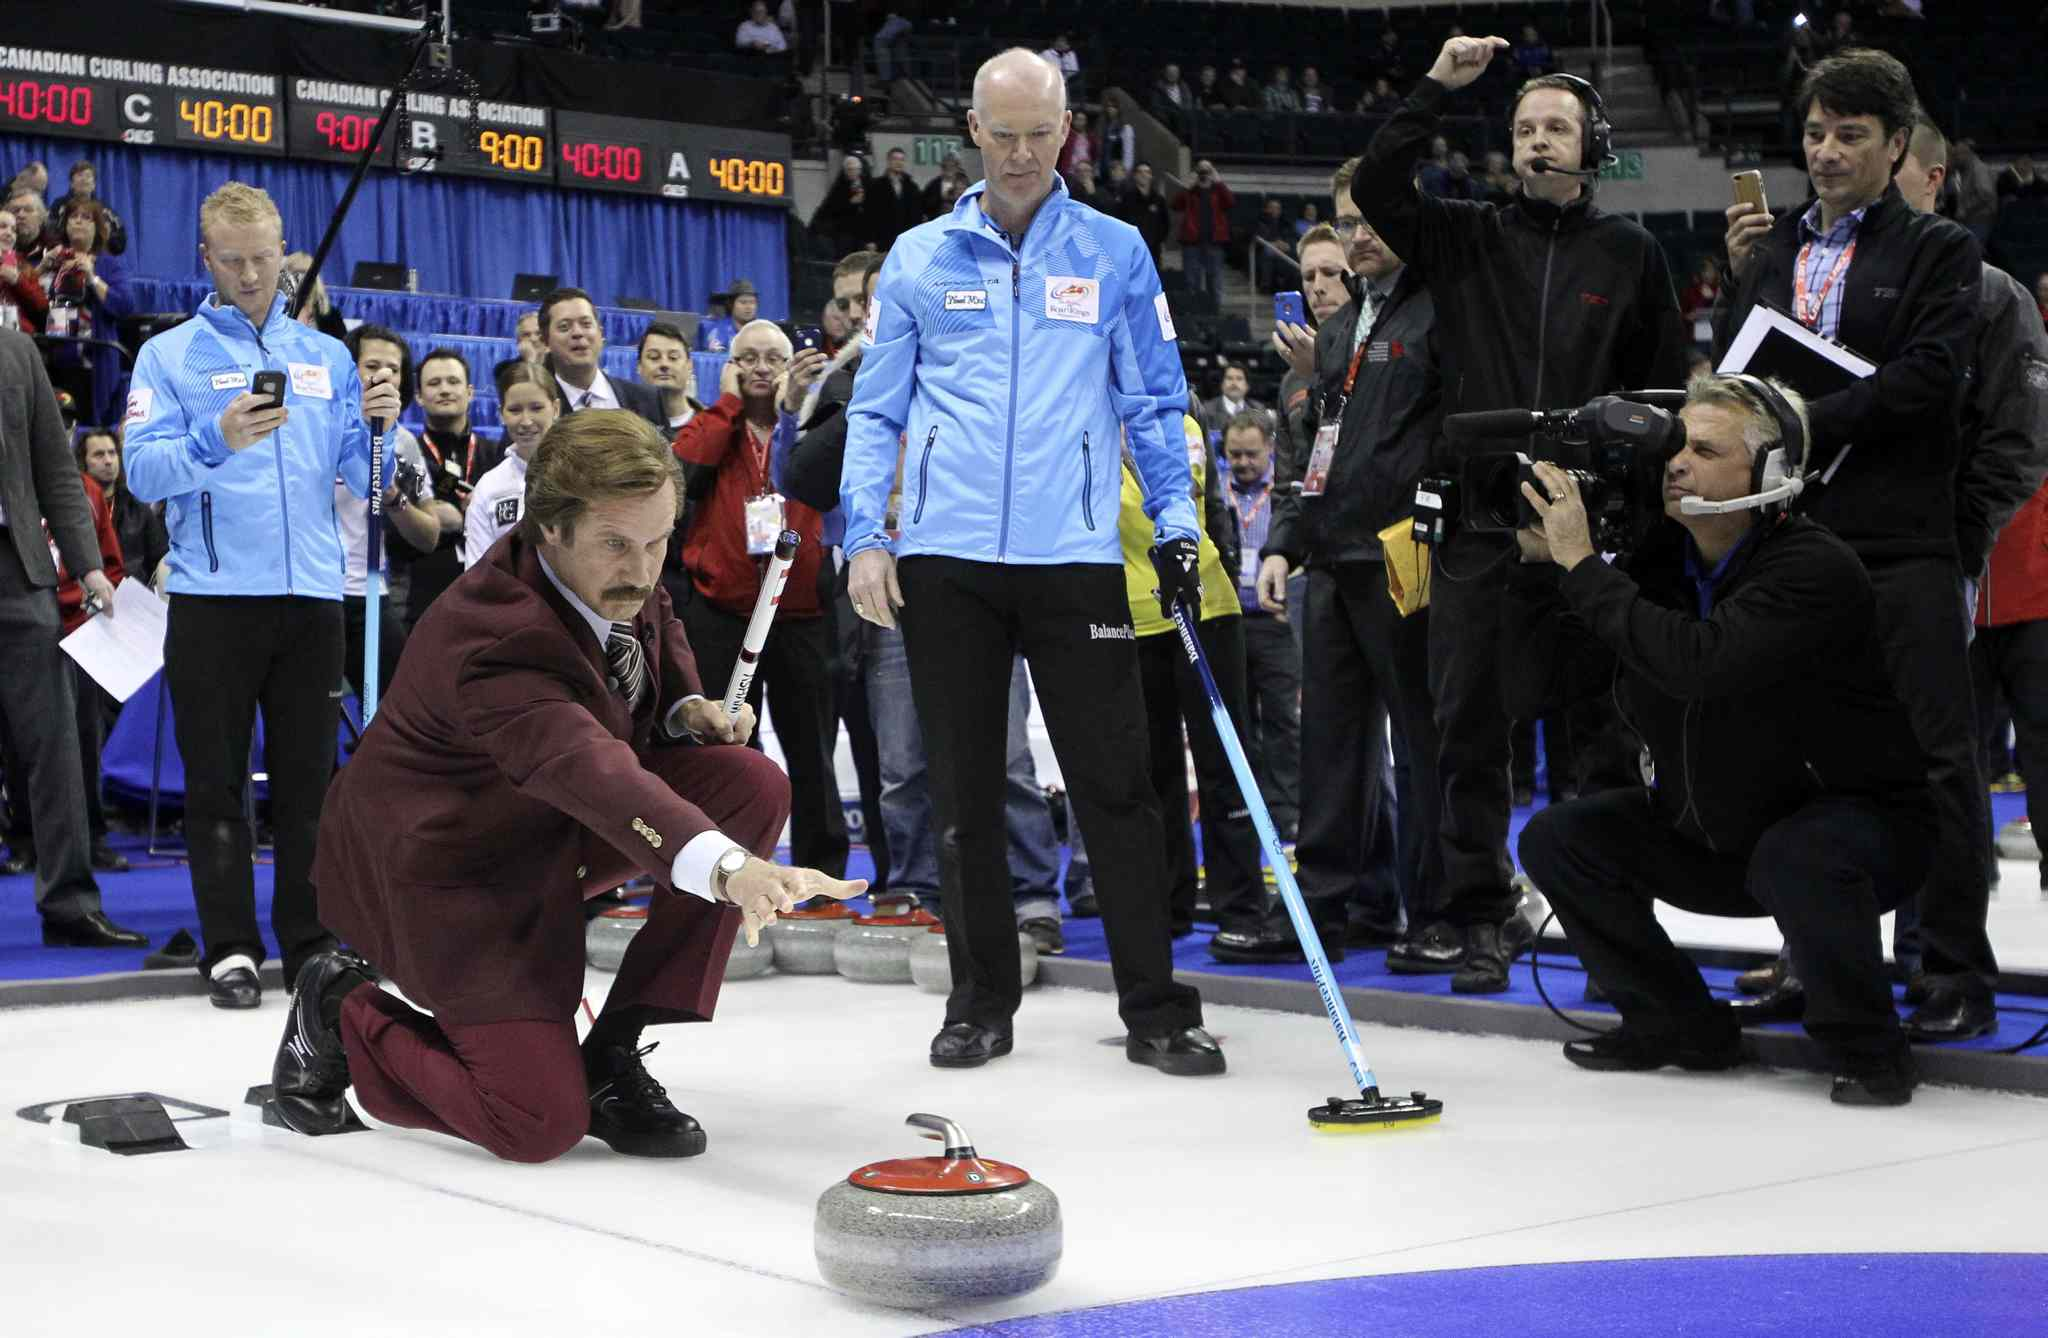 Ron Burgundy, a.k.a. Will Ferrell, throws a rock prior to the Roar of the Rings curling event at the MTS Centre Sunday.